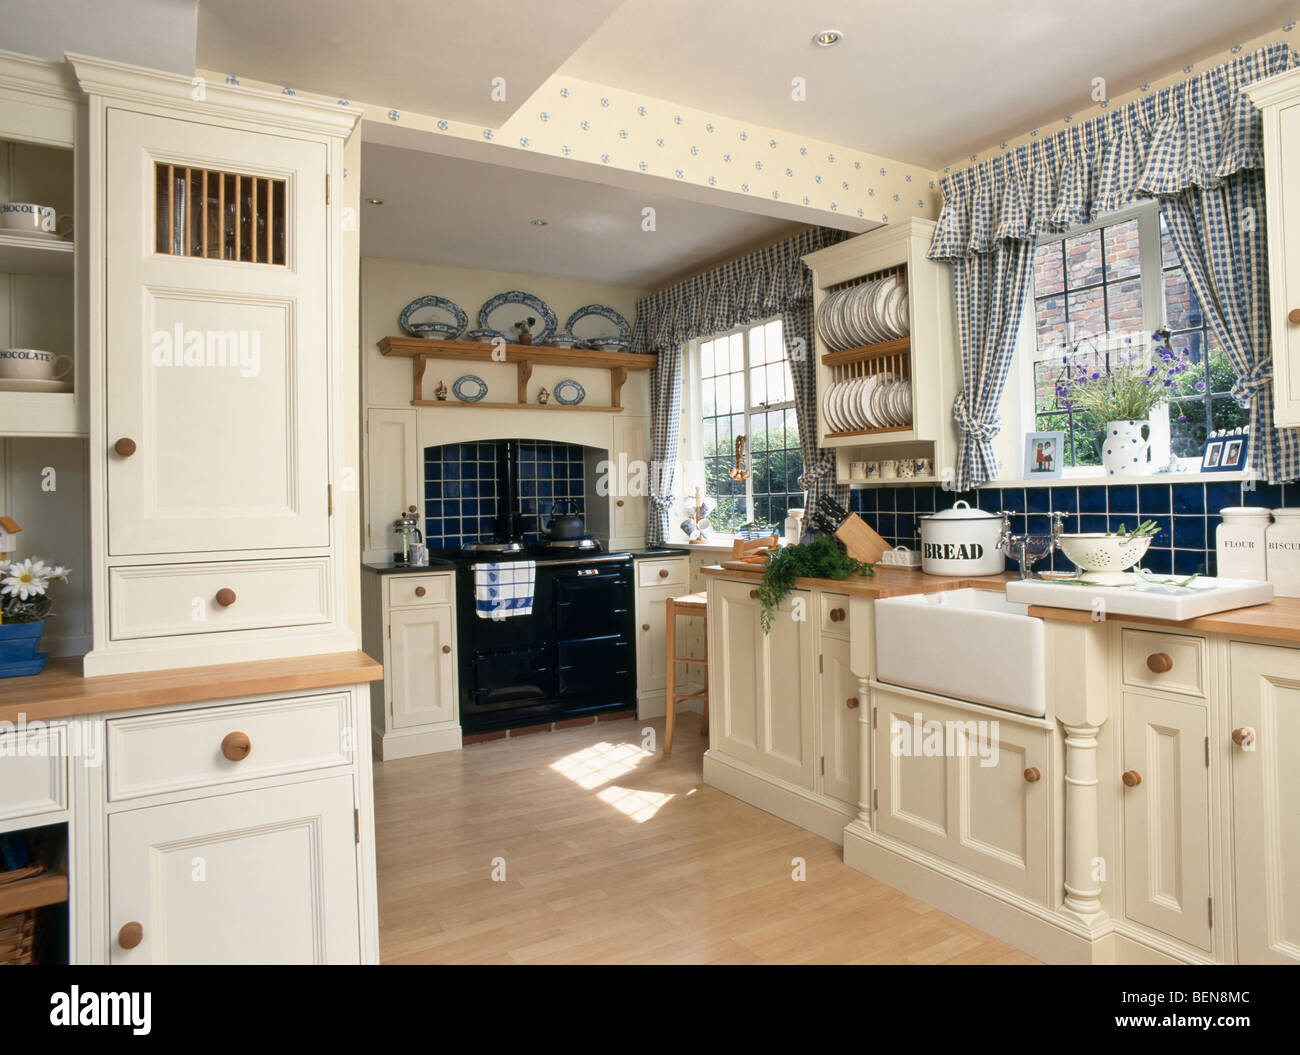 Blue Checked Curtains On Window In Country Kitchen With Fitted Cream Units  And Black Range Oven